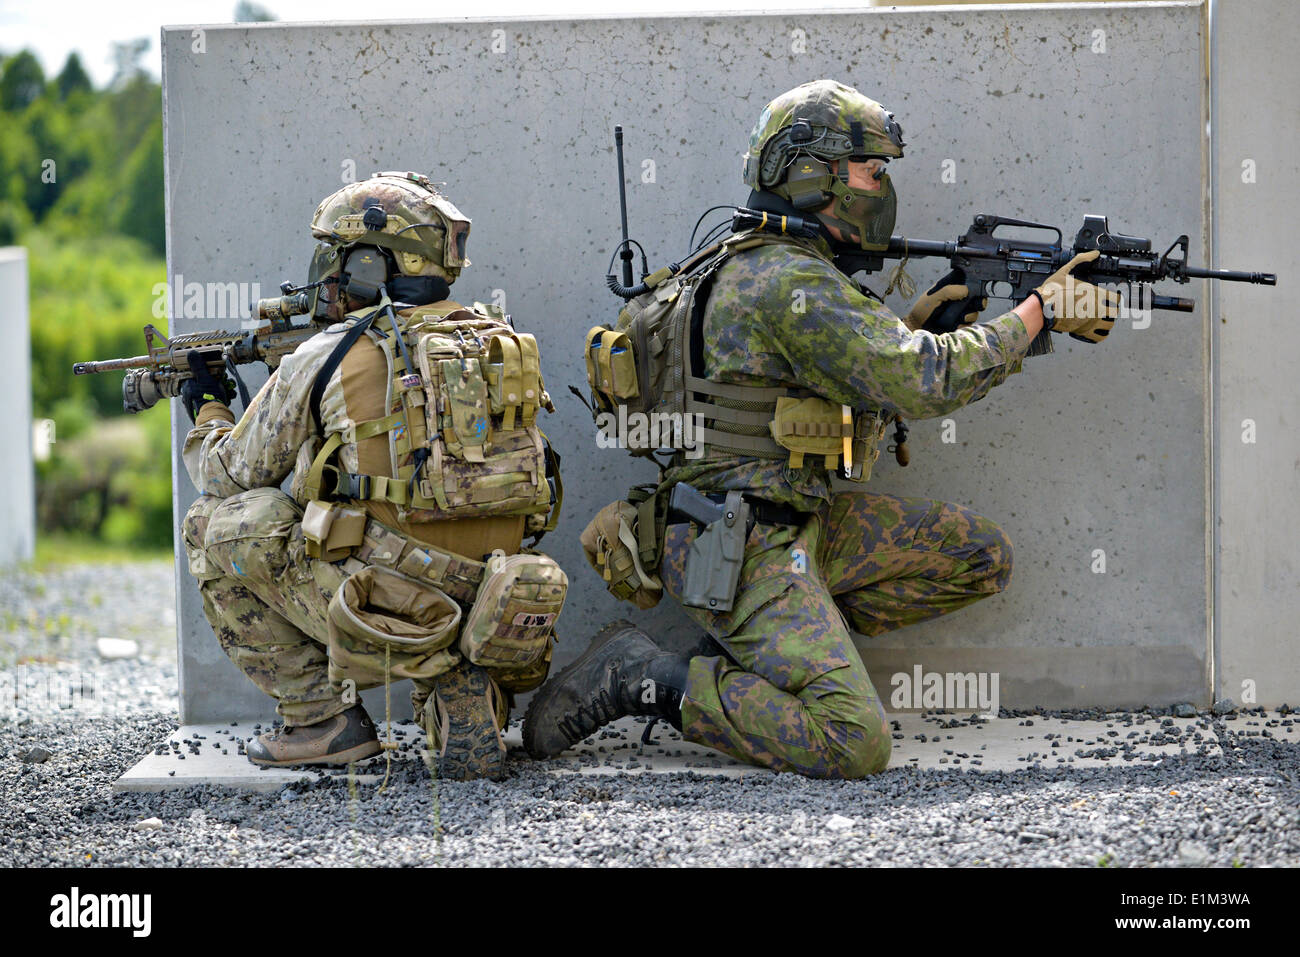 Special operation forces from nine different nations participate in the International Special Training Center advanced close quarter battle course at the 7th Army Joint Multinational Training Command June 5, 2014 at Grafenwoehr Training Area, Germany. - Stock Image